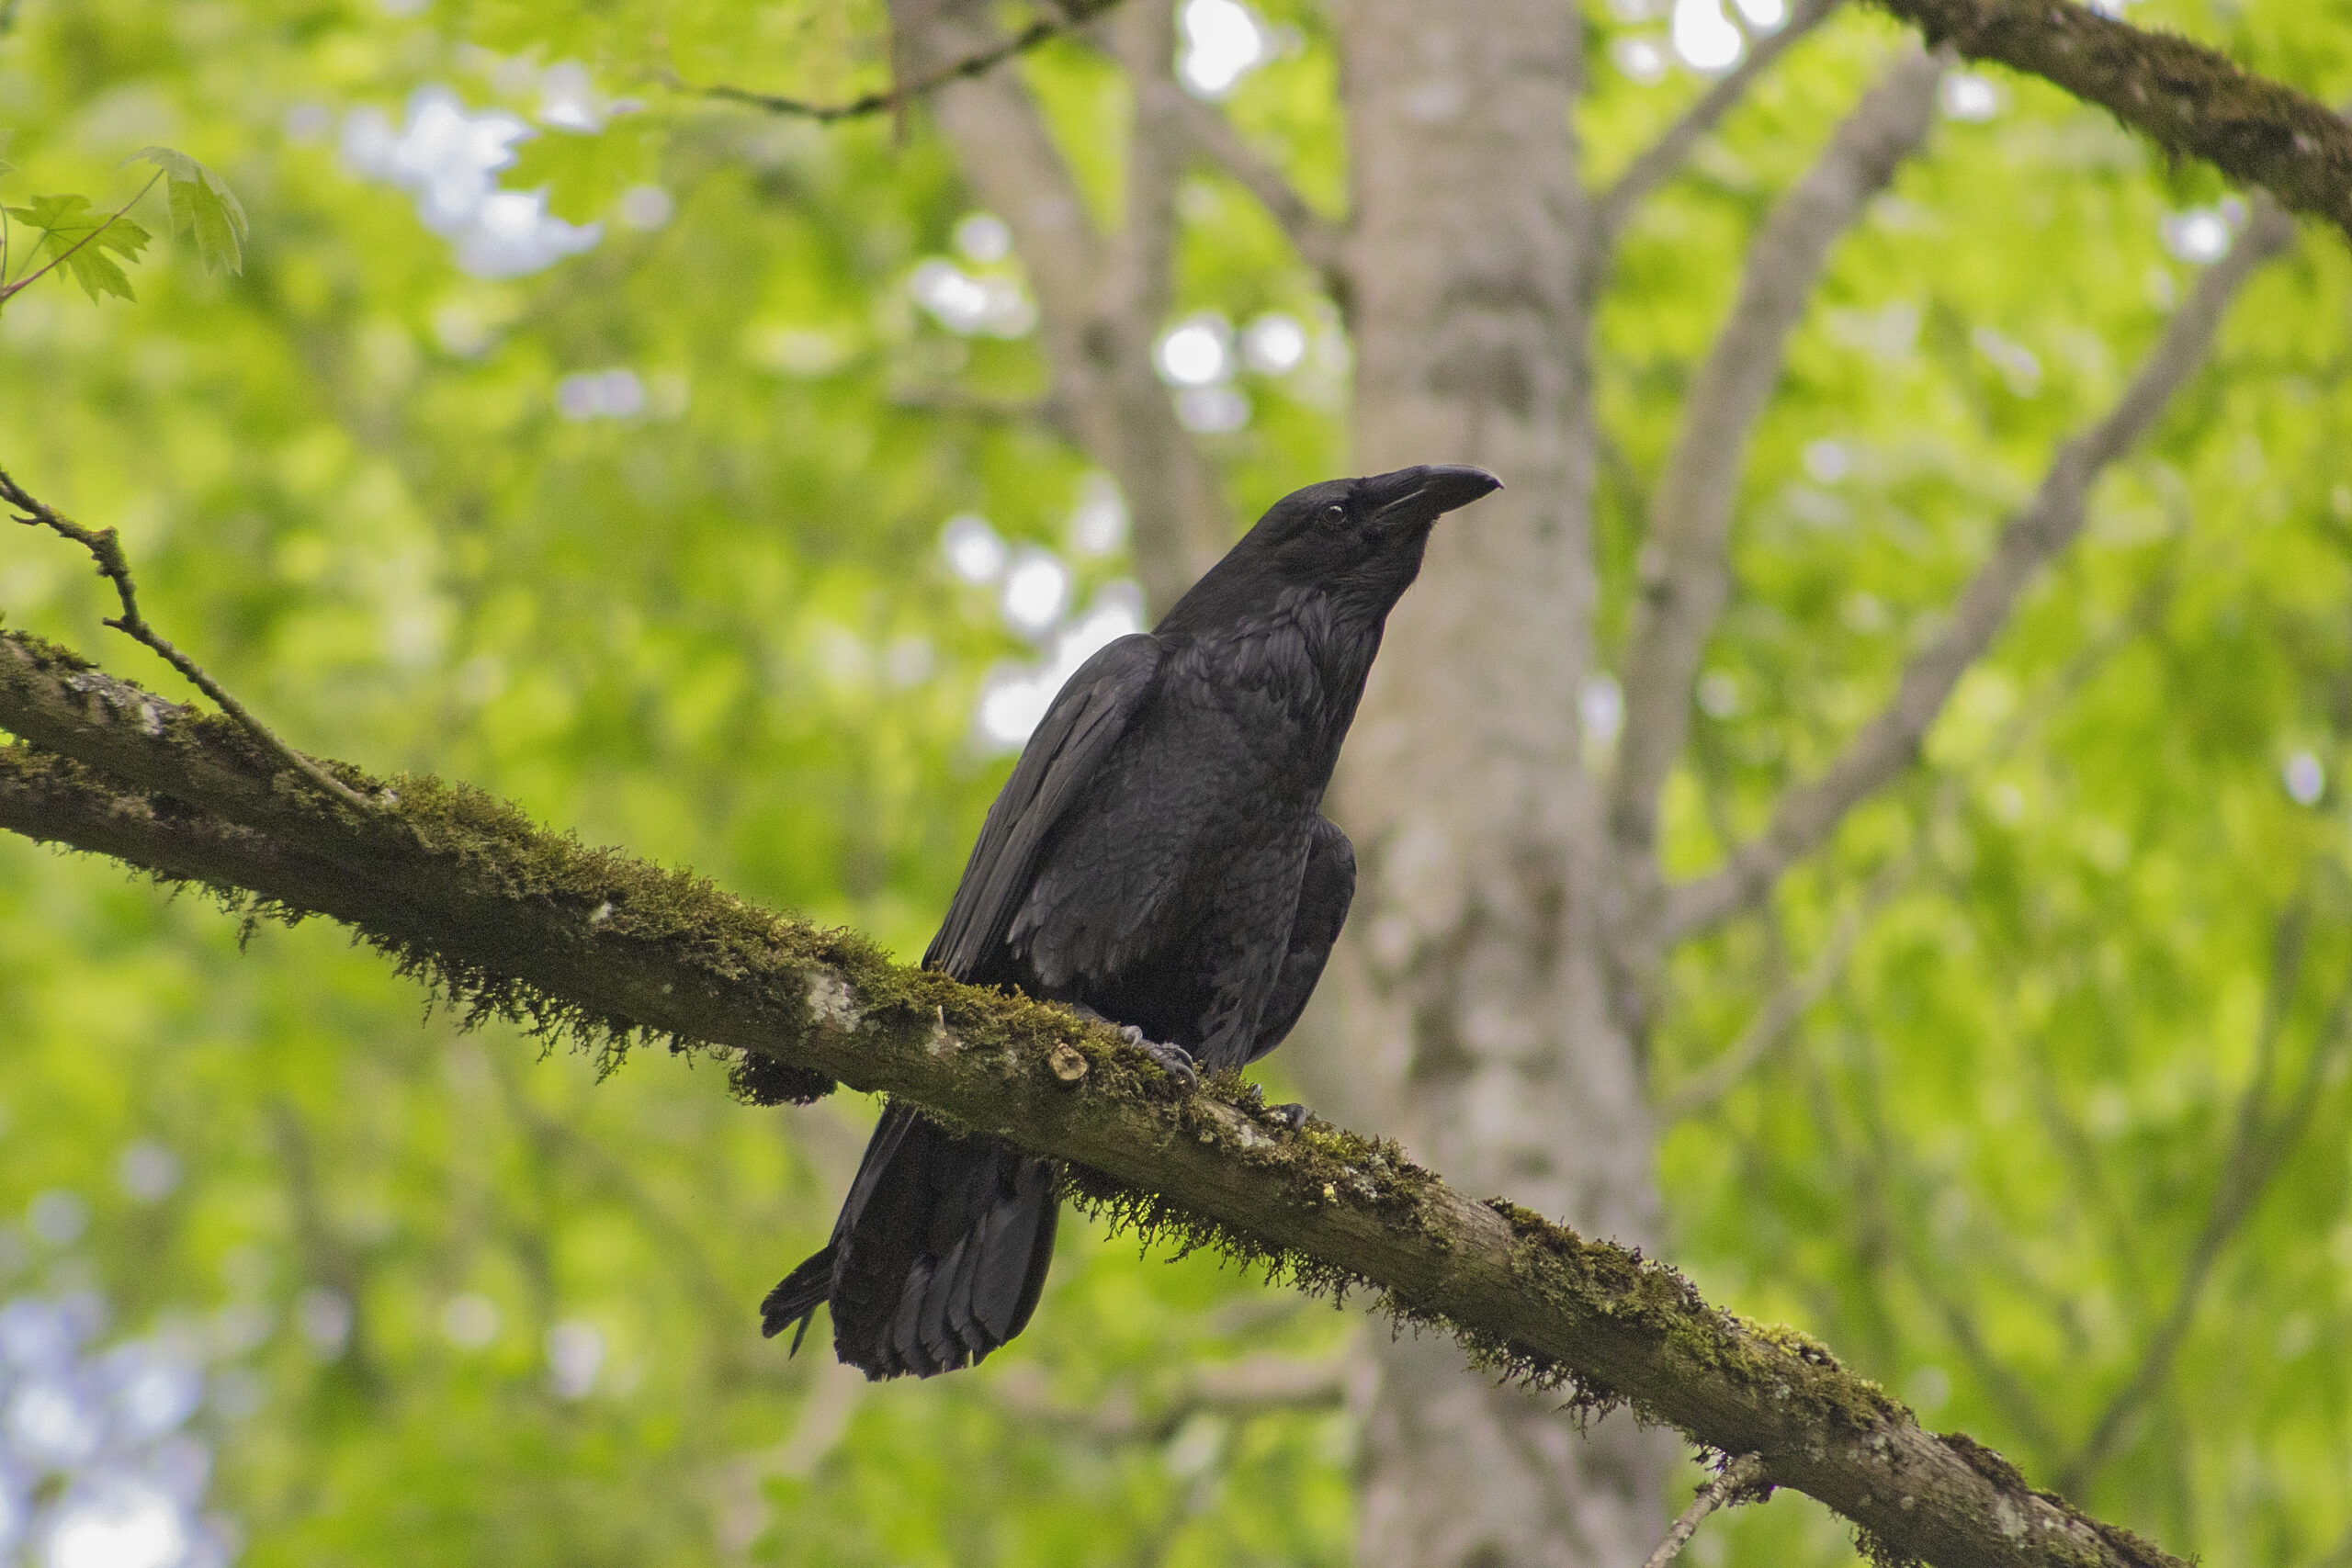 Raven in the Watershed, May 1, 2021